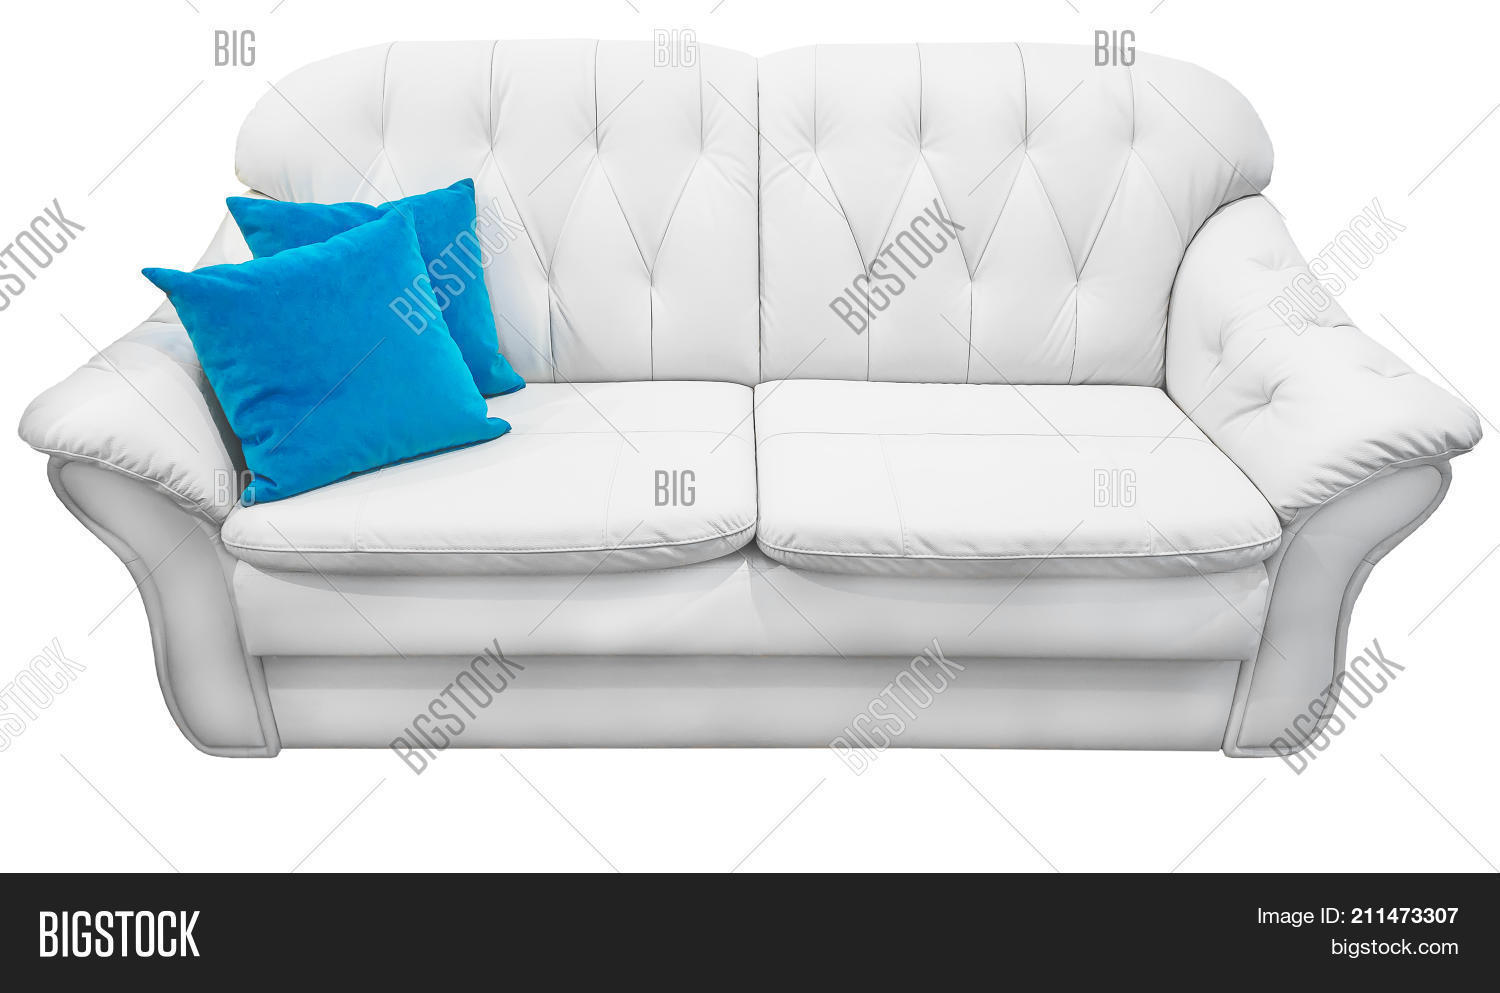 Cool White Sofa Blue Pillow Image Photo Free Trial Bigstock Gamerscity Chair Design For Home Gamerscityorg